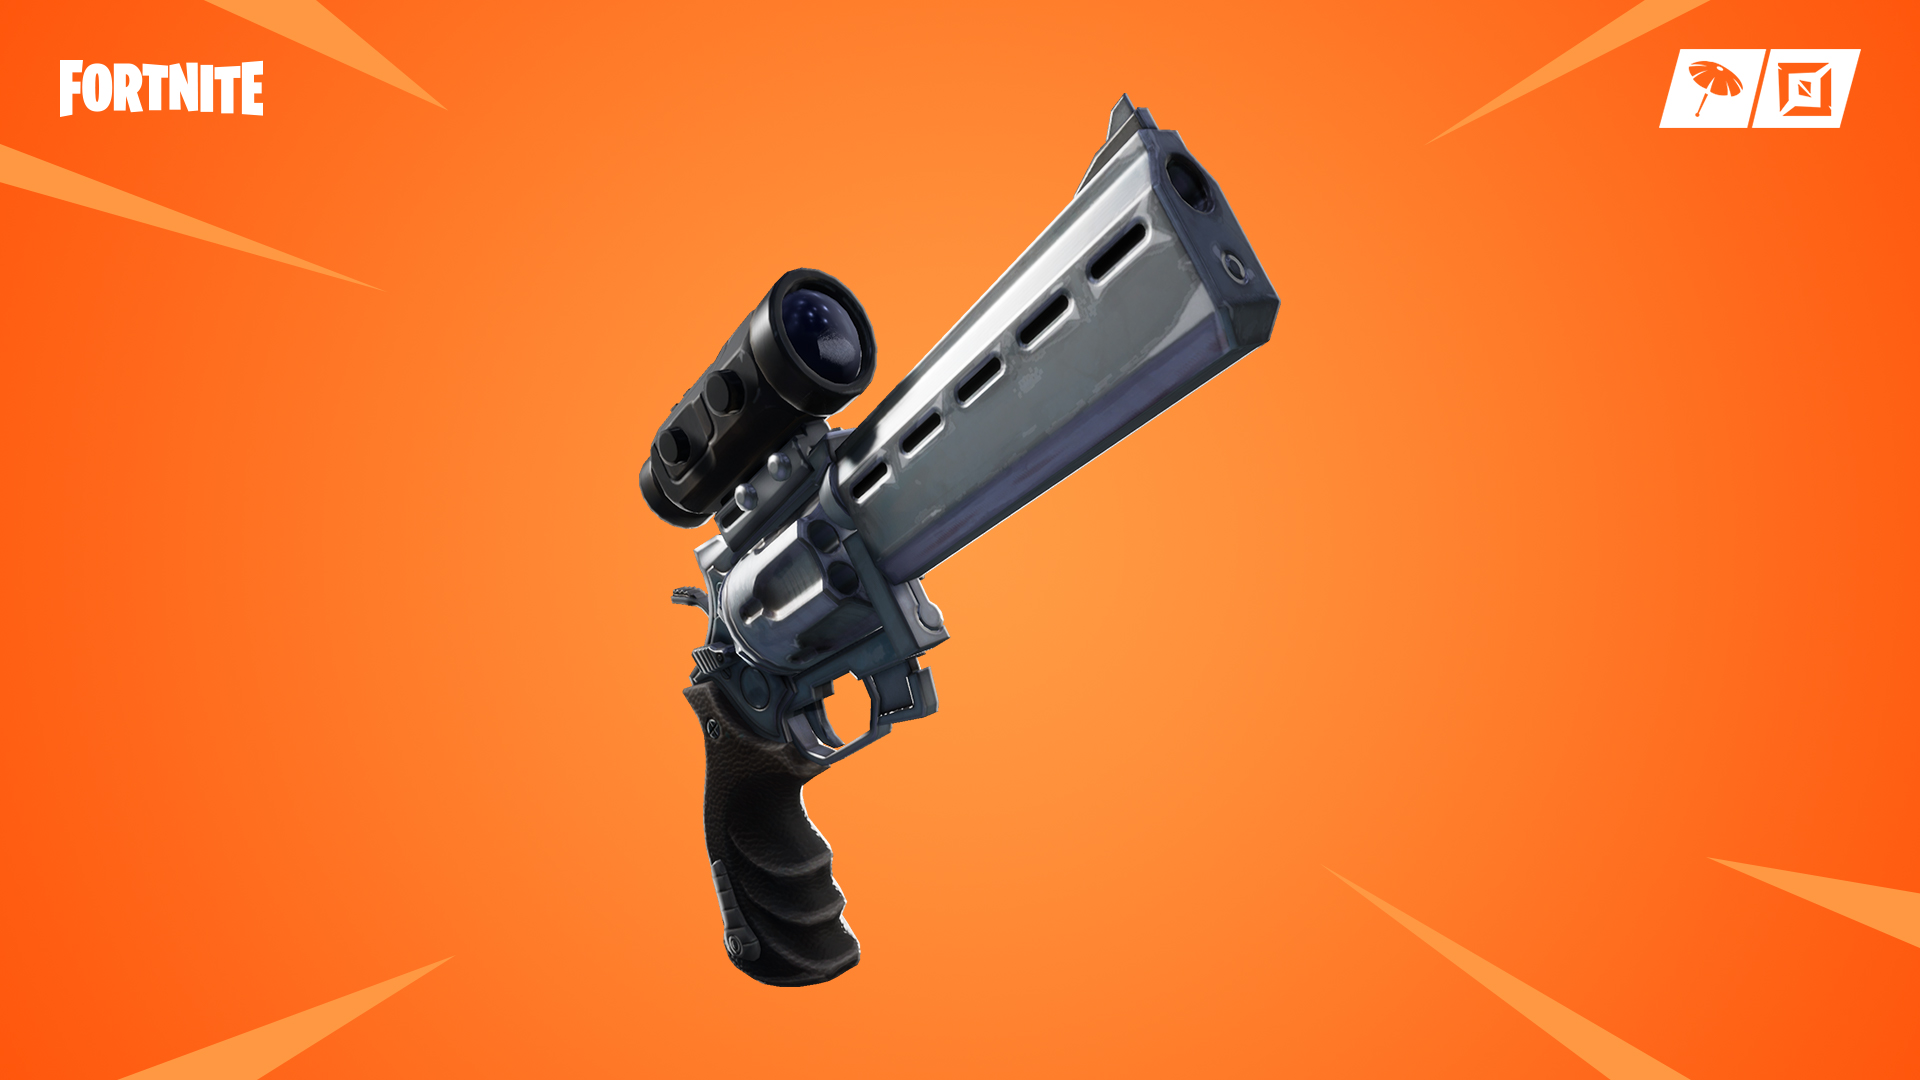 fortnite scoped revolver guide stats tips and locations how to find - how to find fortnite stats